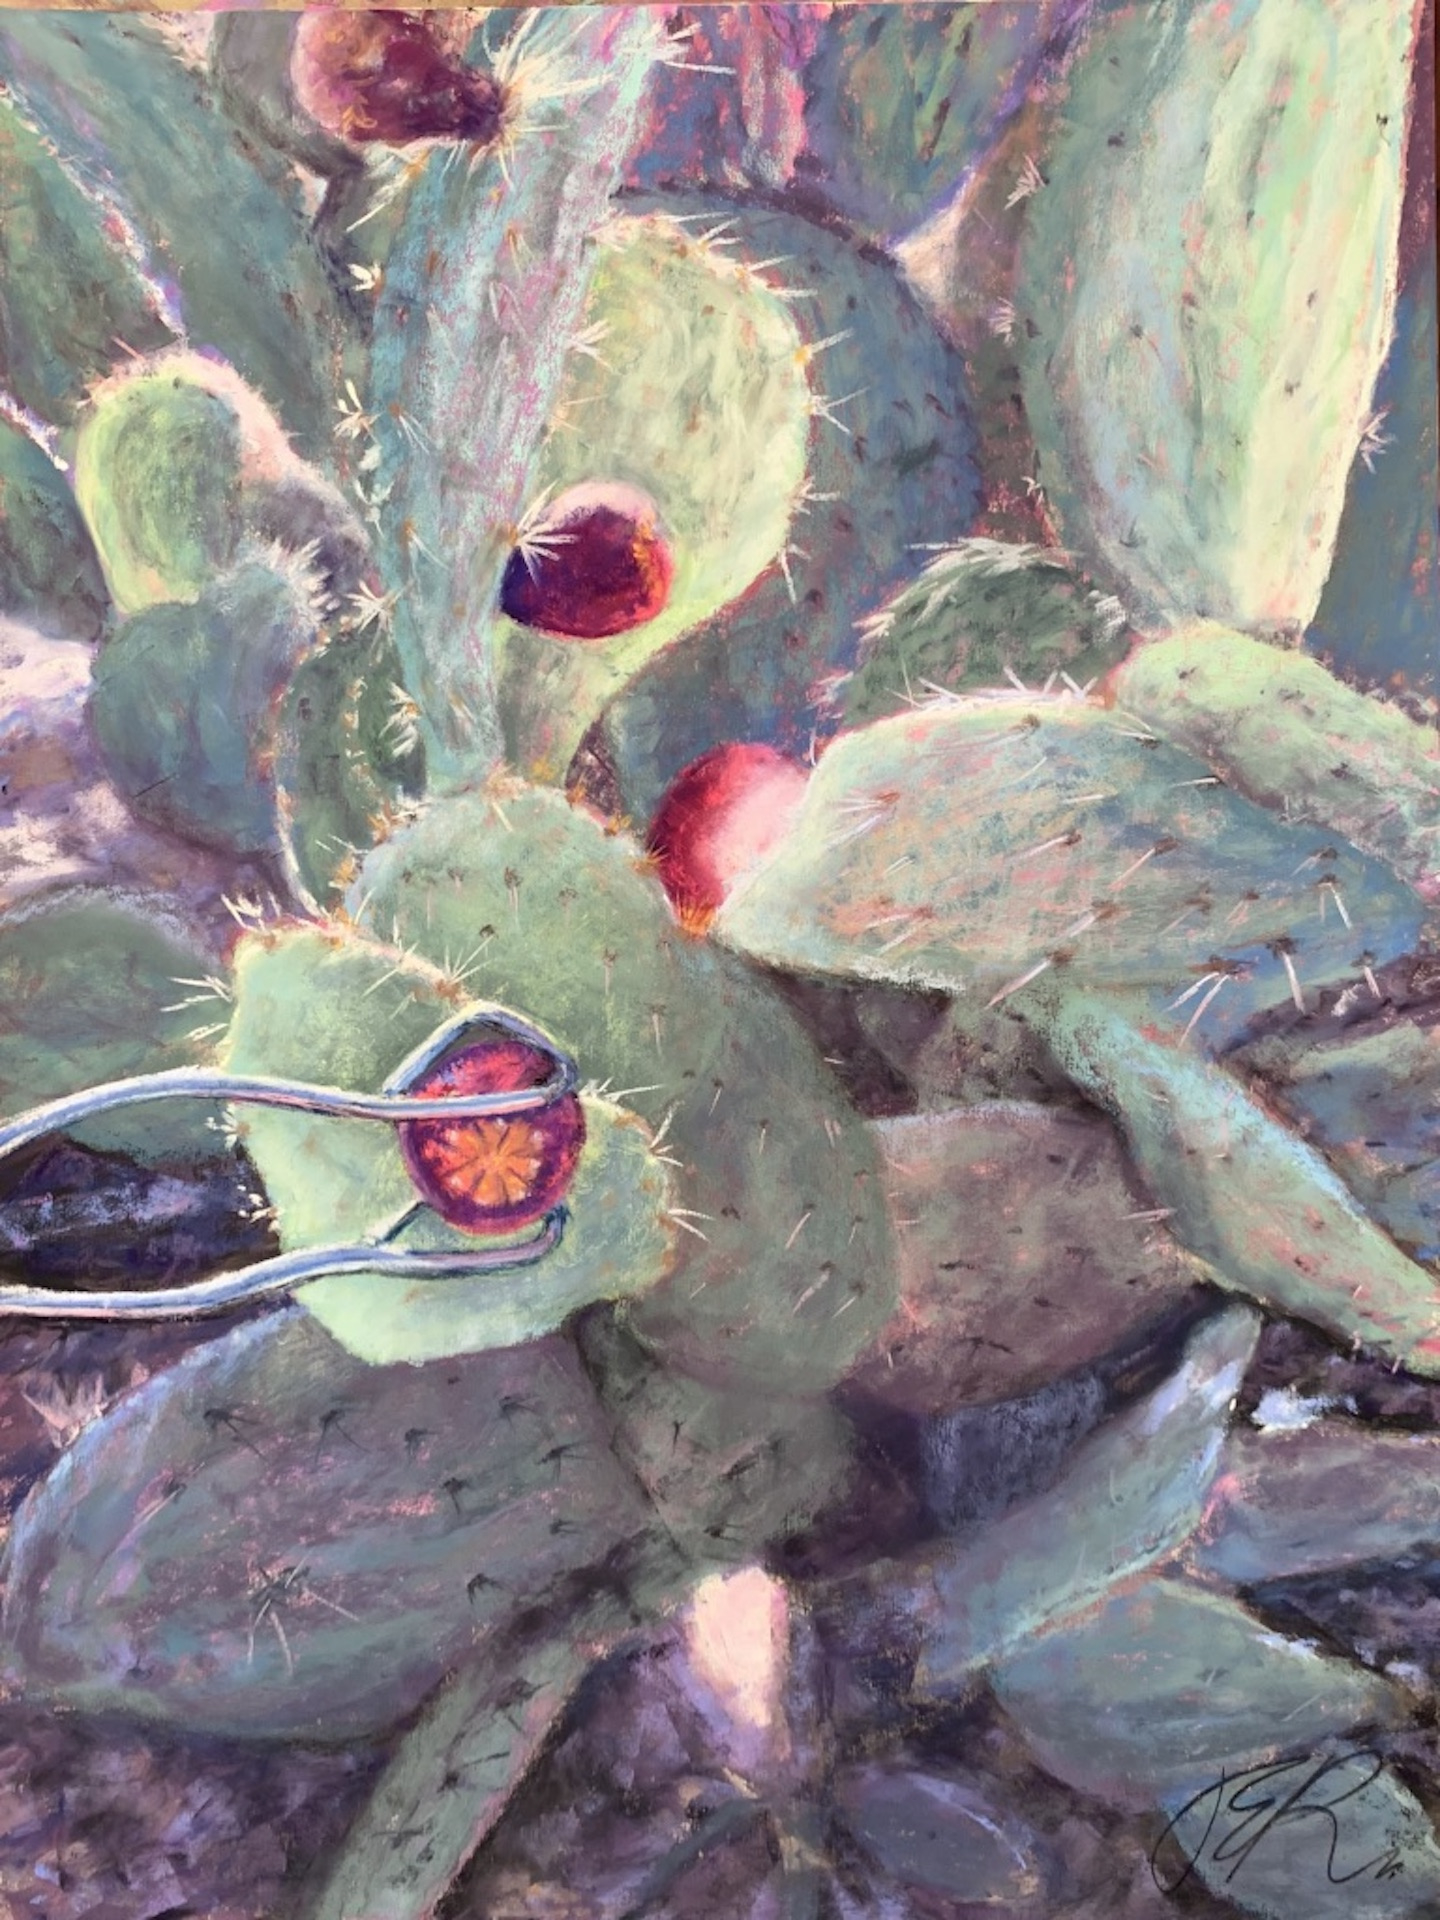 Picking Prickly Pear